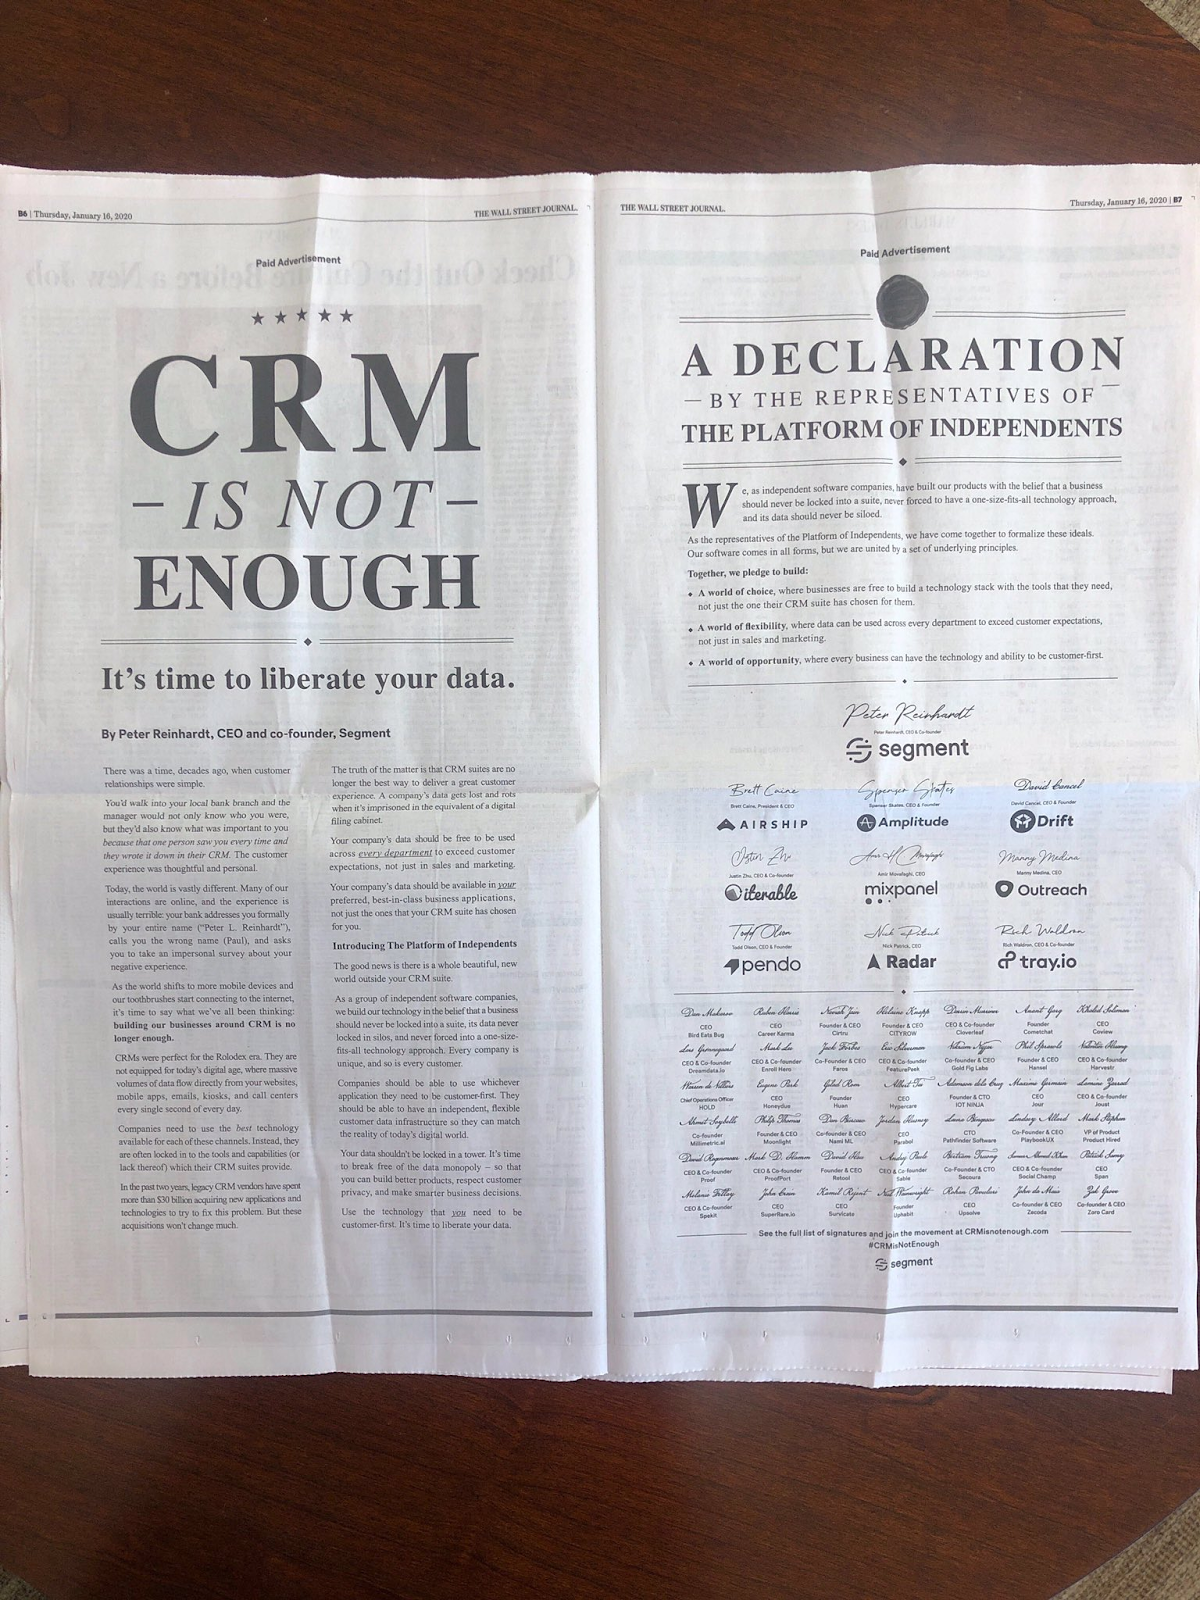 Full-page Wall Street Journal advertisement